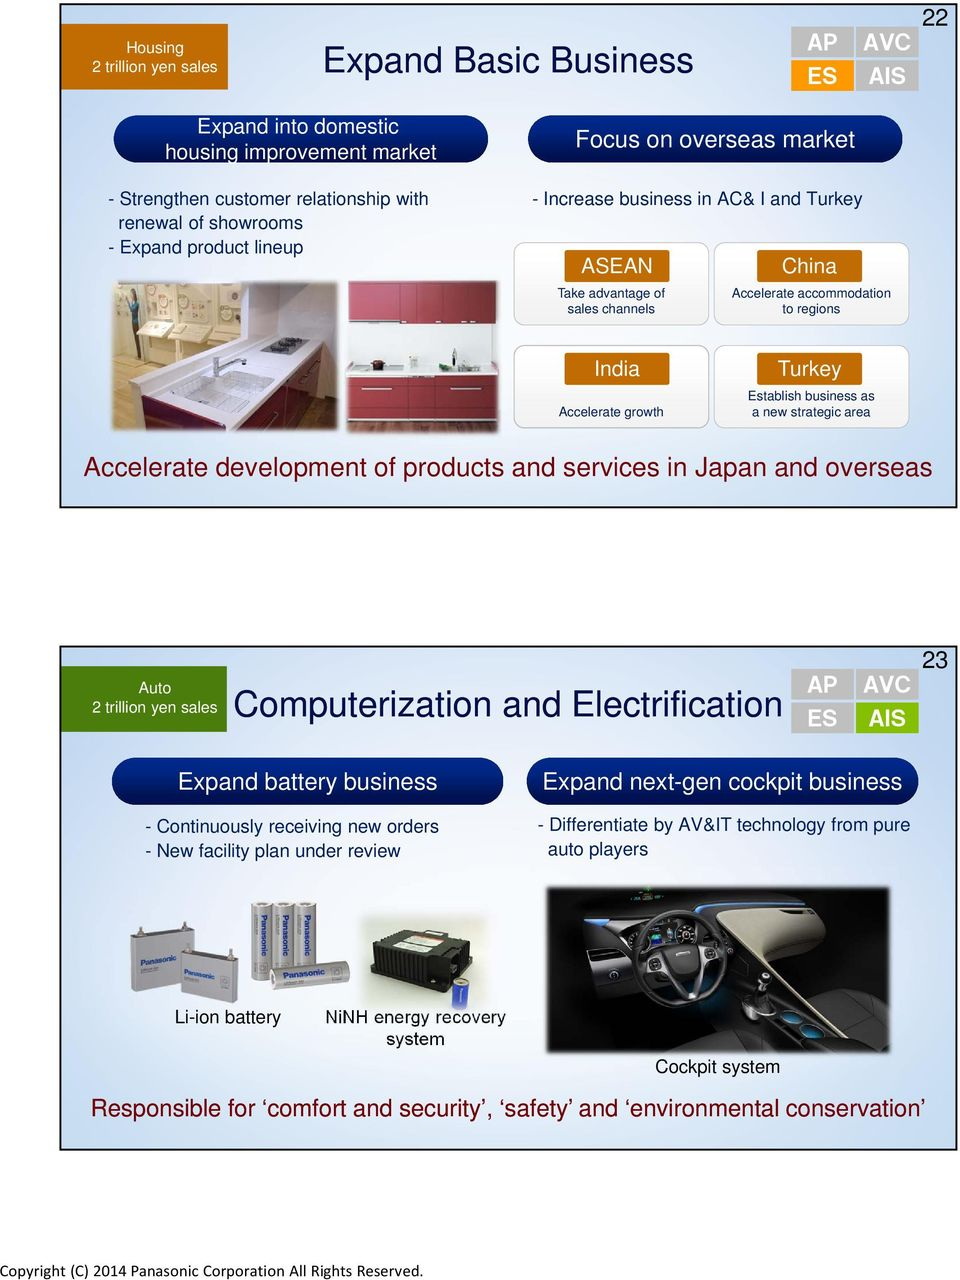 business as a new strategic area Accelerate development of products and services in Japan and overseas Auto 2 trillion yen sales Computerization and Electrification AP ES AVC AIS 23 Expand battery